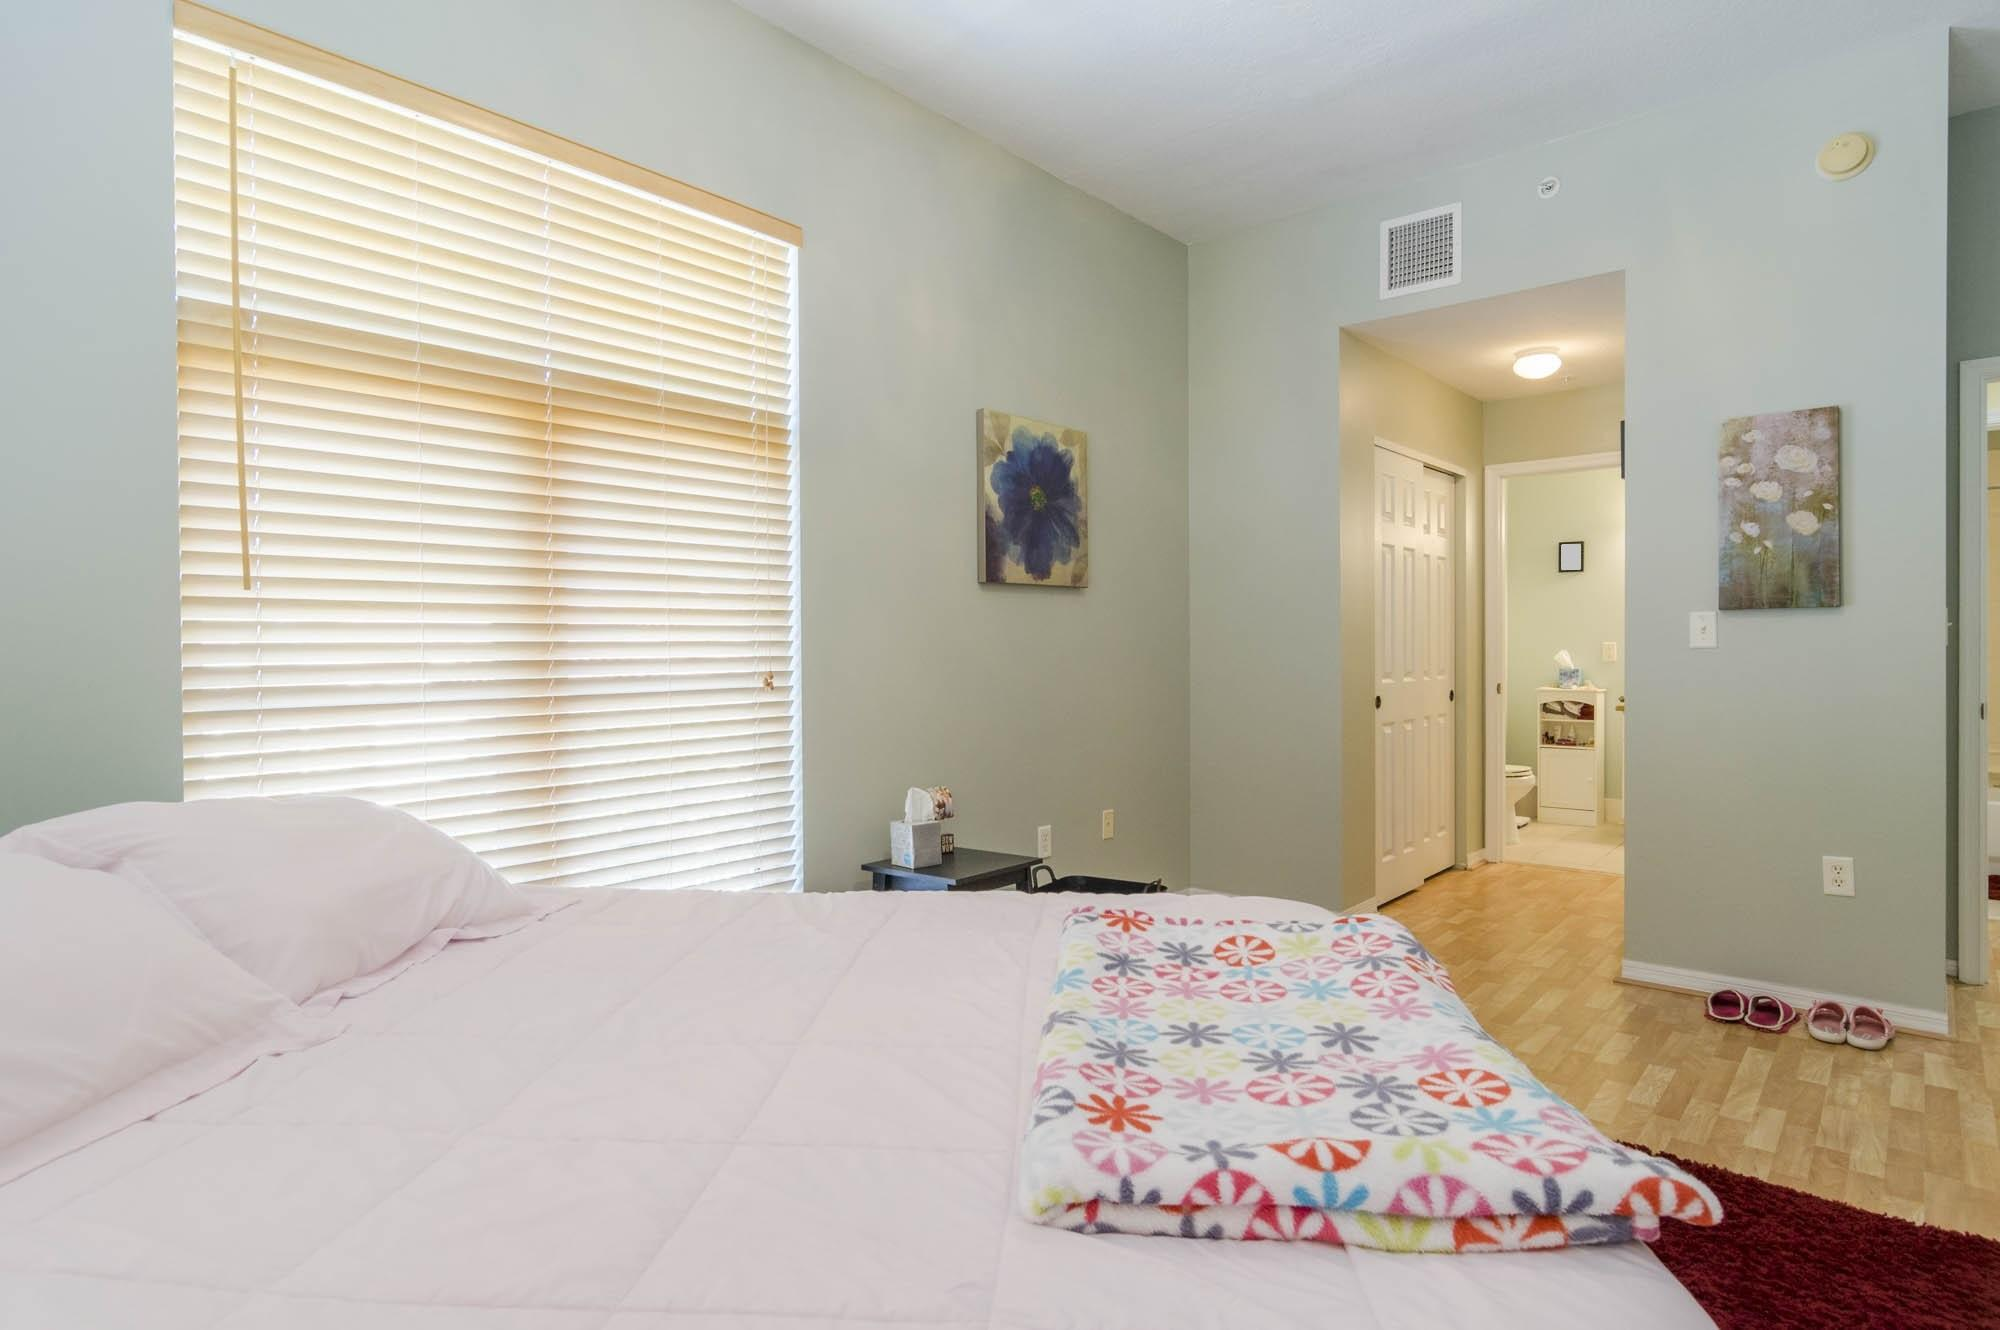 1153 Town Center Drive 302  - Abacoa Homes - photo 13